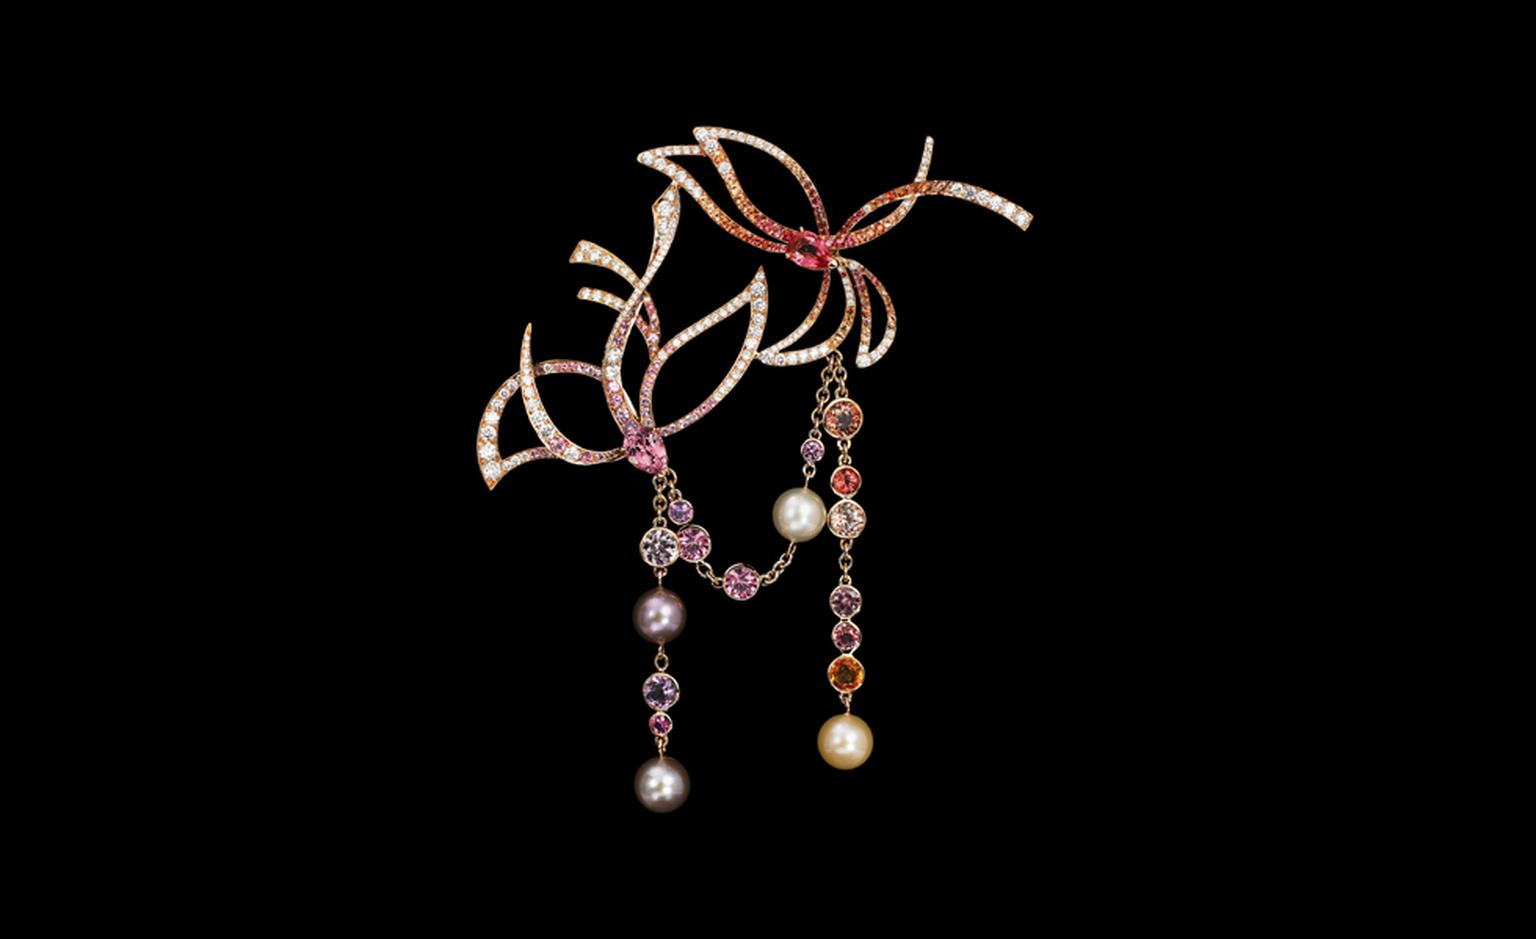 Lorenz Bäumer, Broche Oisaux perles with saphires, amethyst, pearls, white diamonds and set in pink gold. €37,250